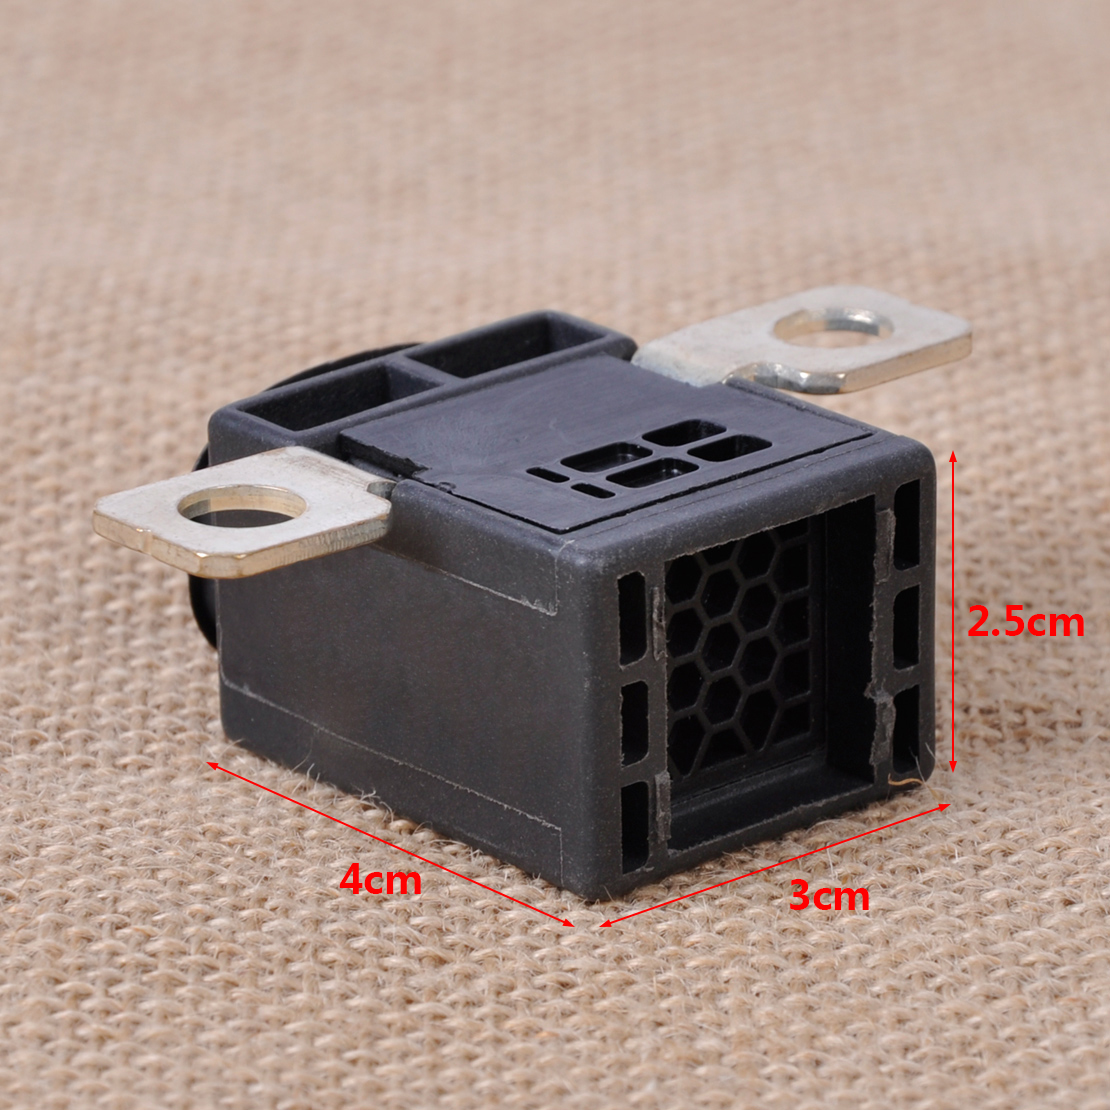 4f0915519 battery fuse overload protection trip for vw touareg audi a4 tt skoda ebay. Black Bedroom Furniture Sets. Home Design Ideas